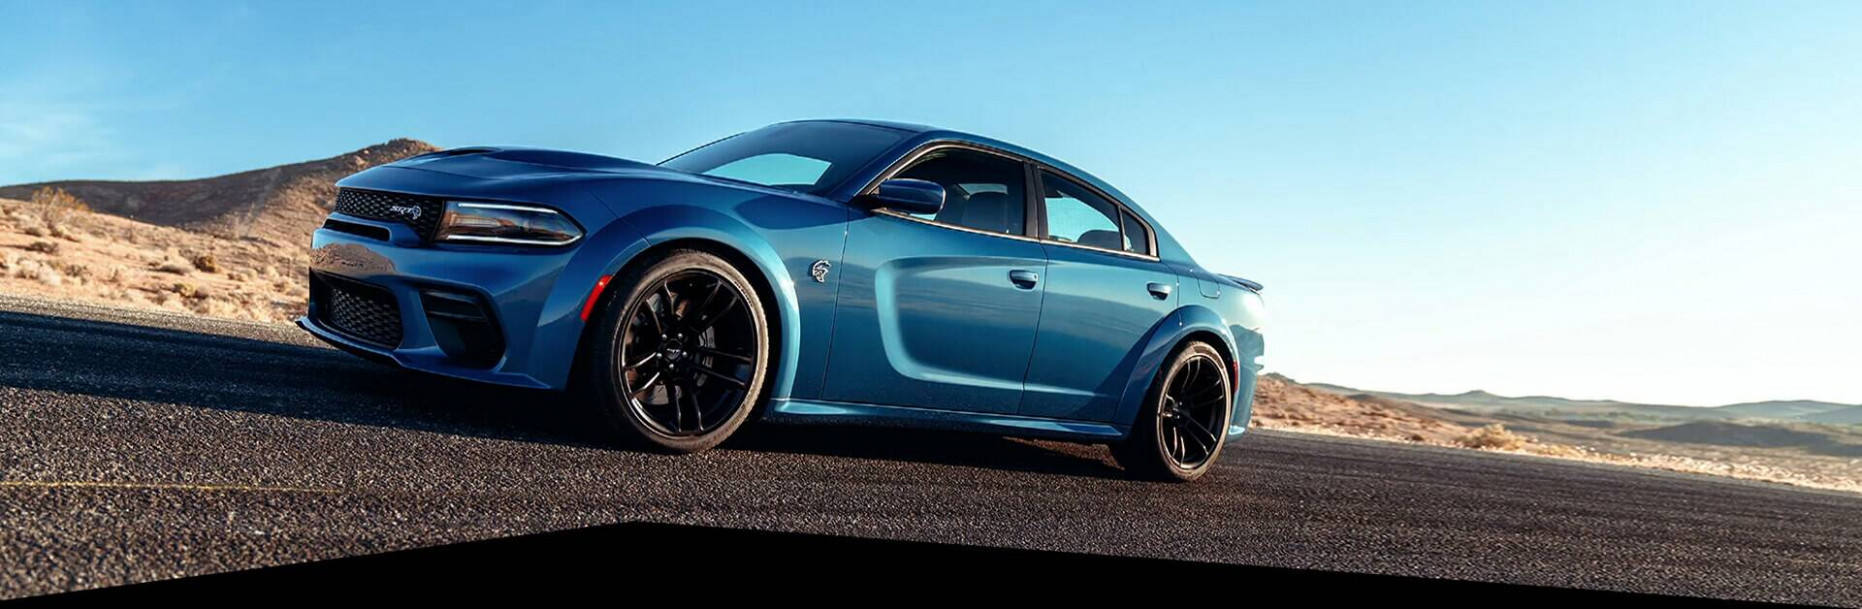 5 Dodge Charger SRT® Hellcat Widebody   Configurations   2020 Dodge Charger Hellcat